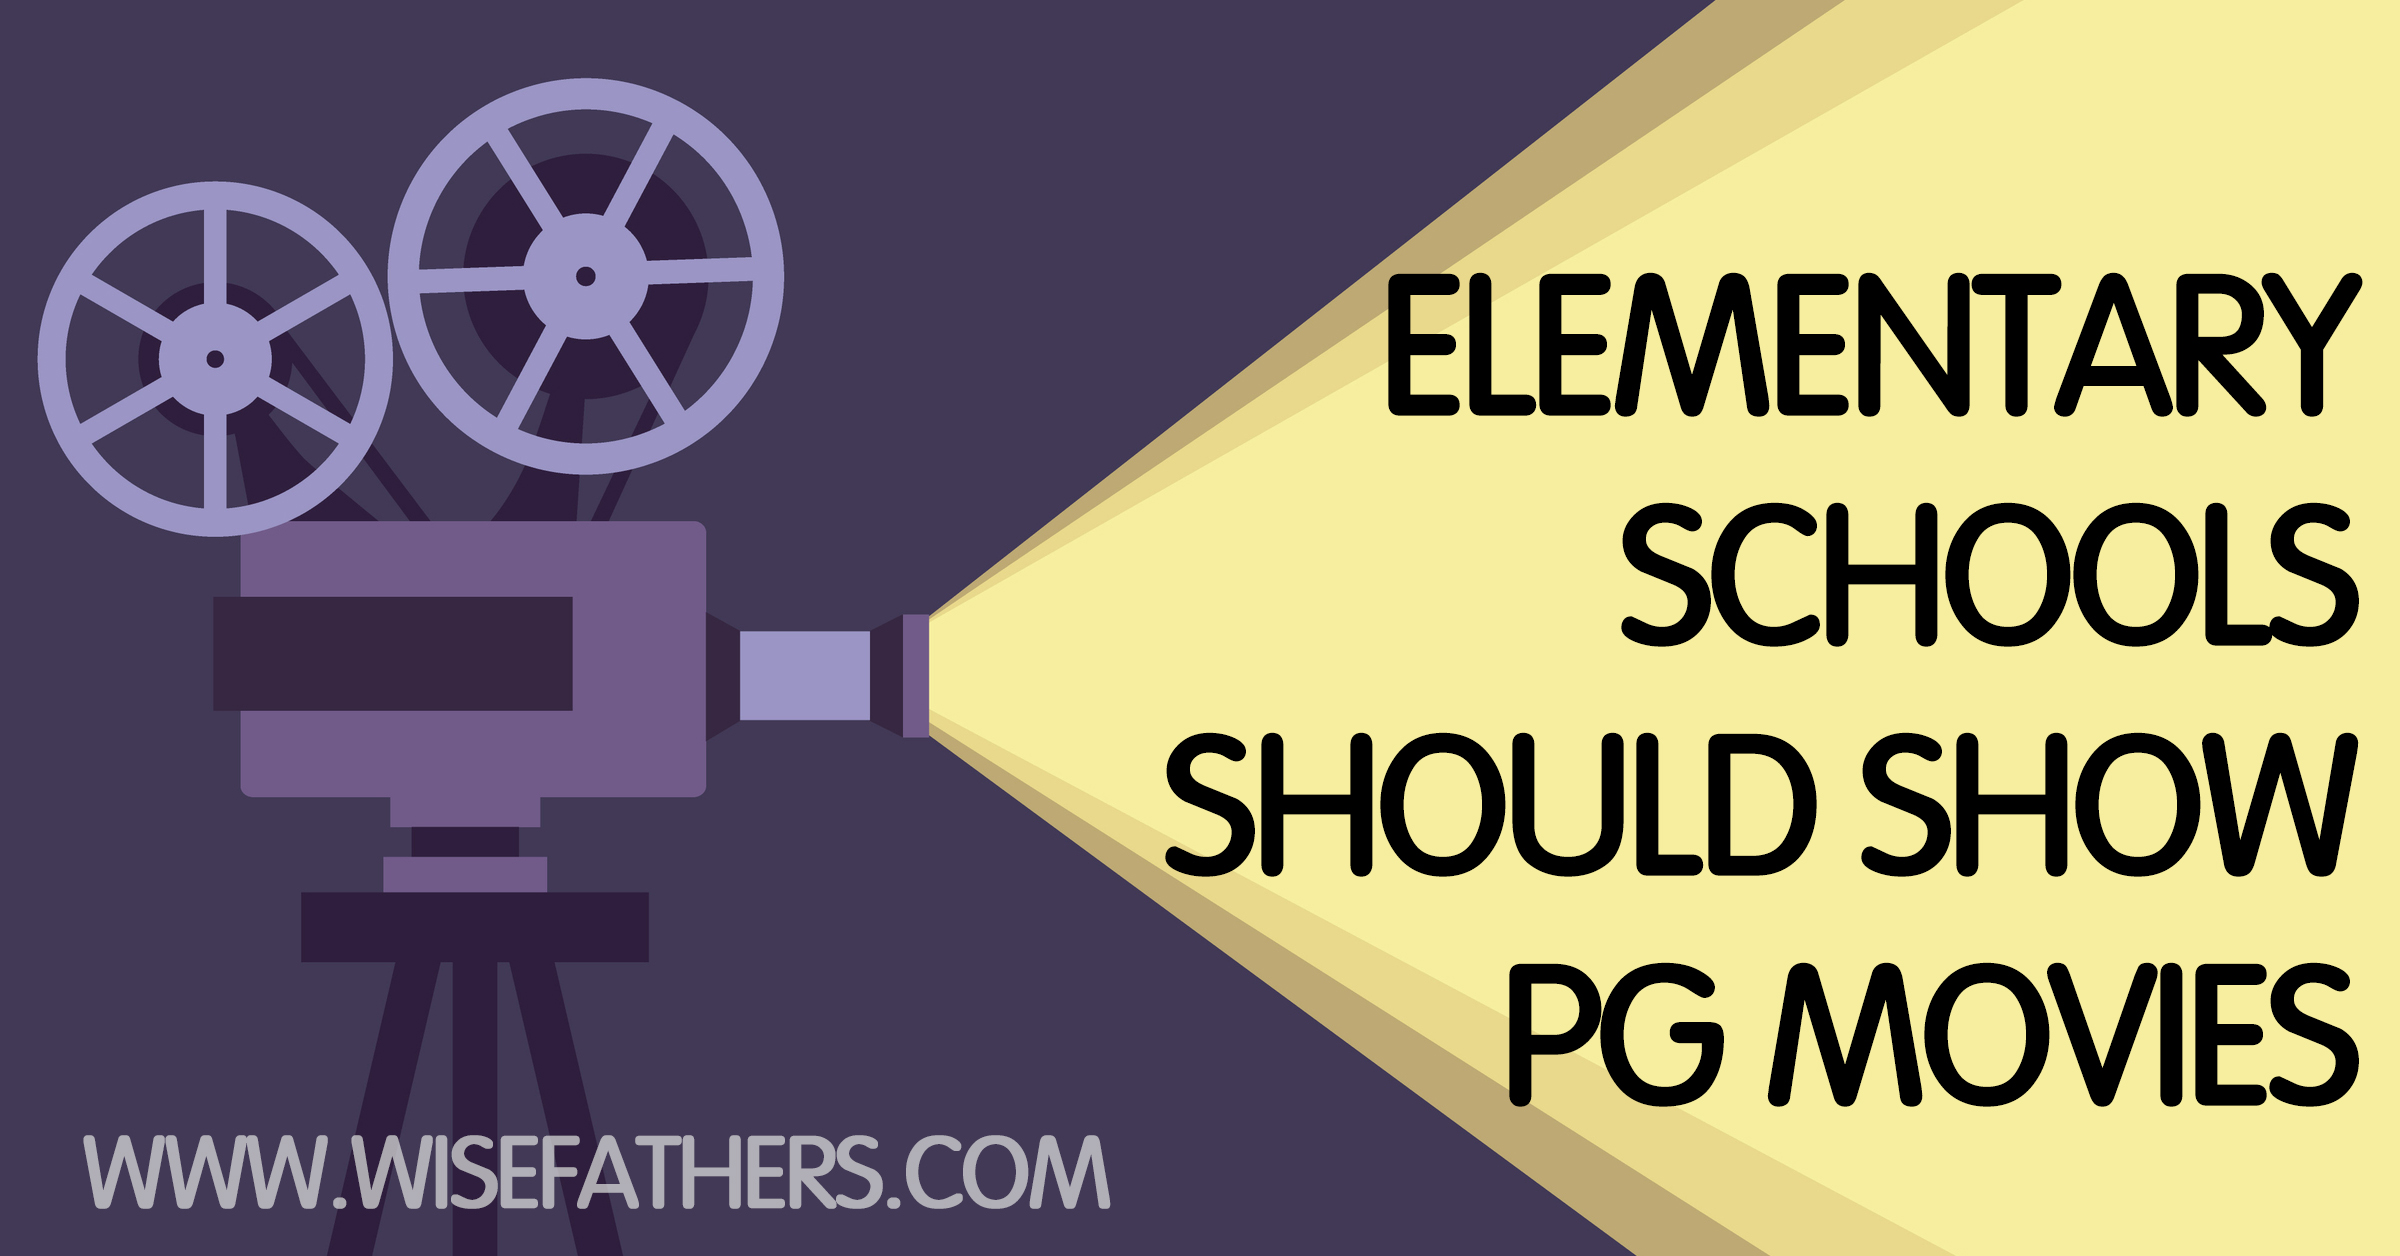 Why Elementary Schools Should Show PG Movies